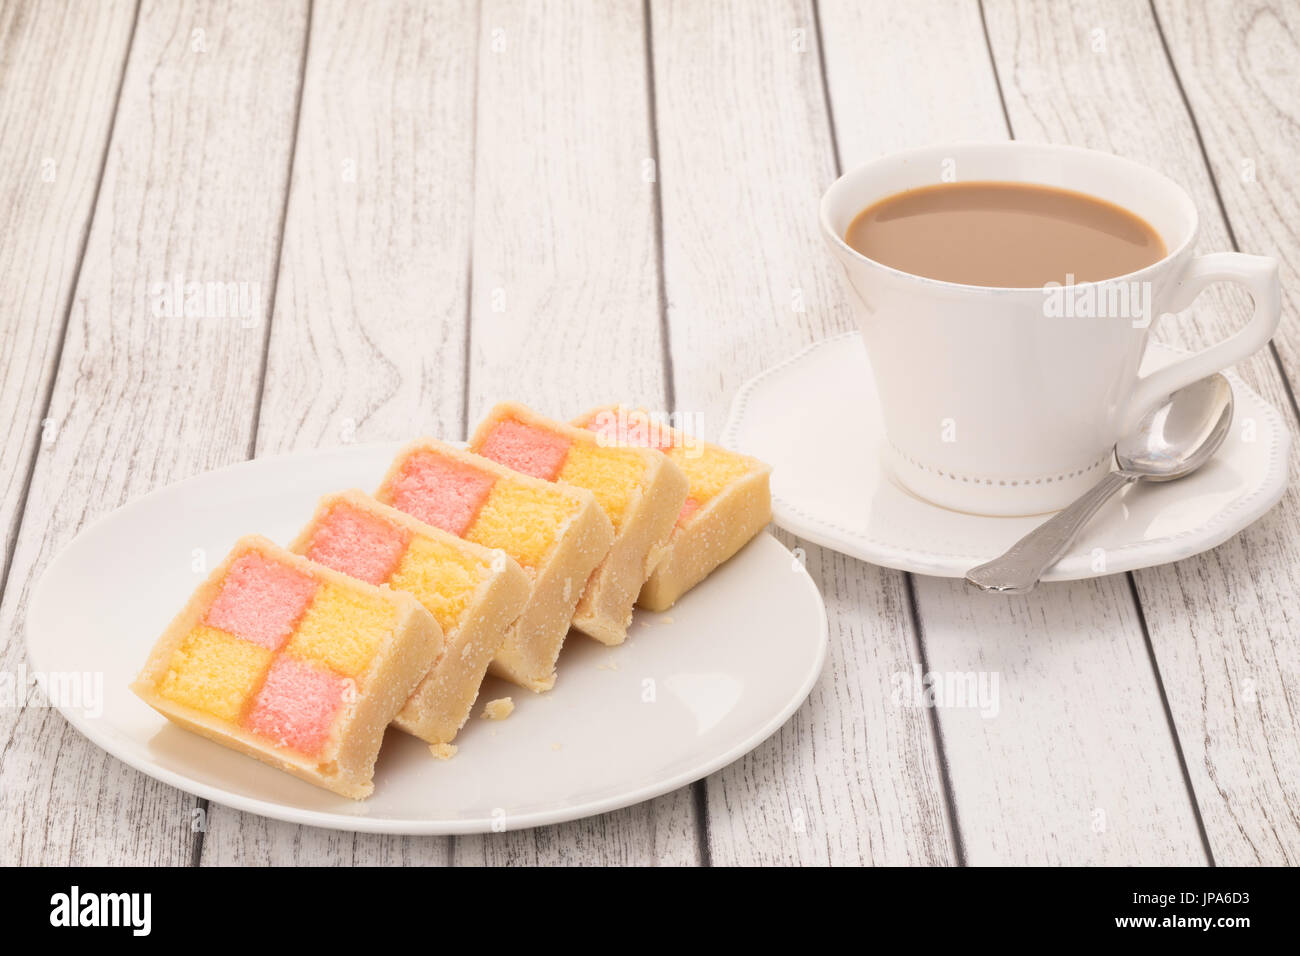 Slices of Battenburg cake with a cup of coffee - Stock Image